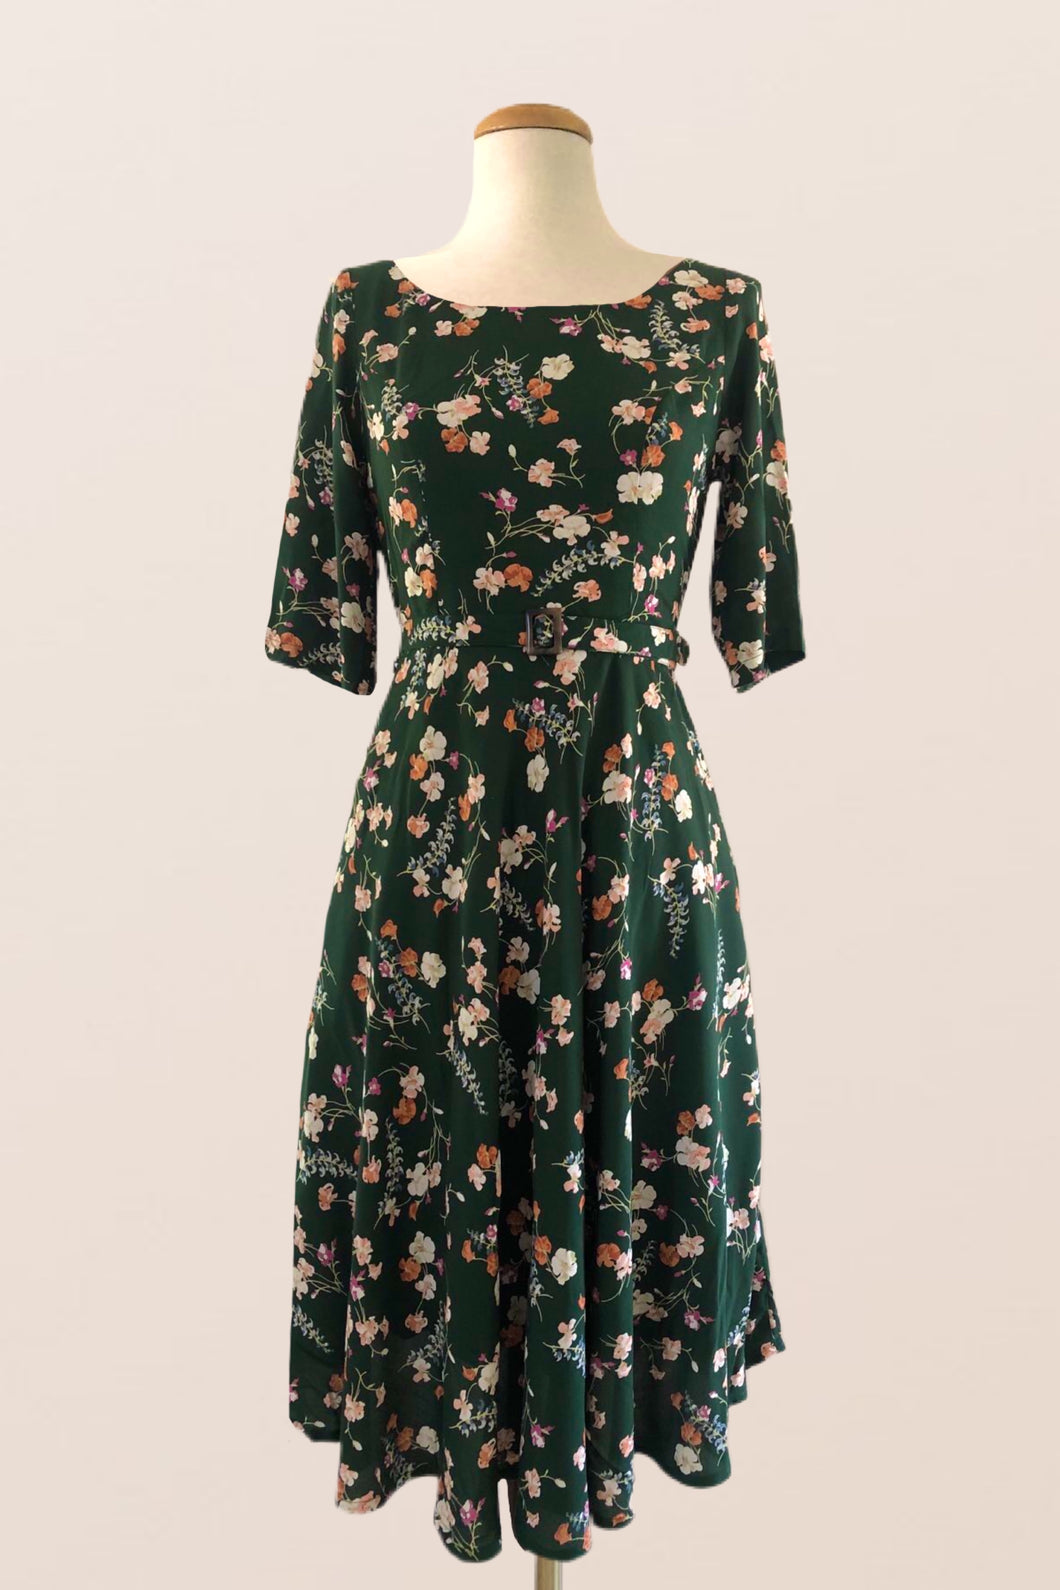 Anderson Green Floral Dress